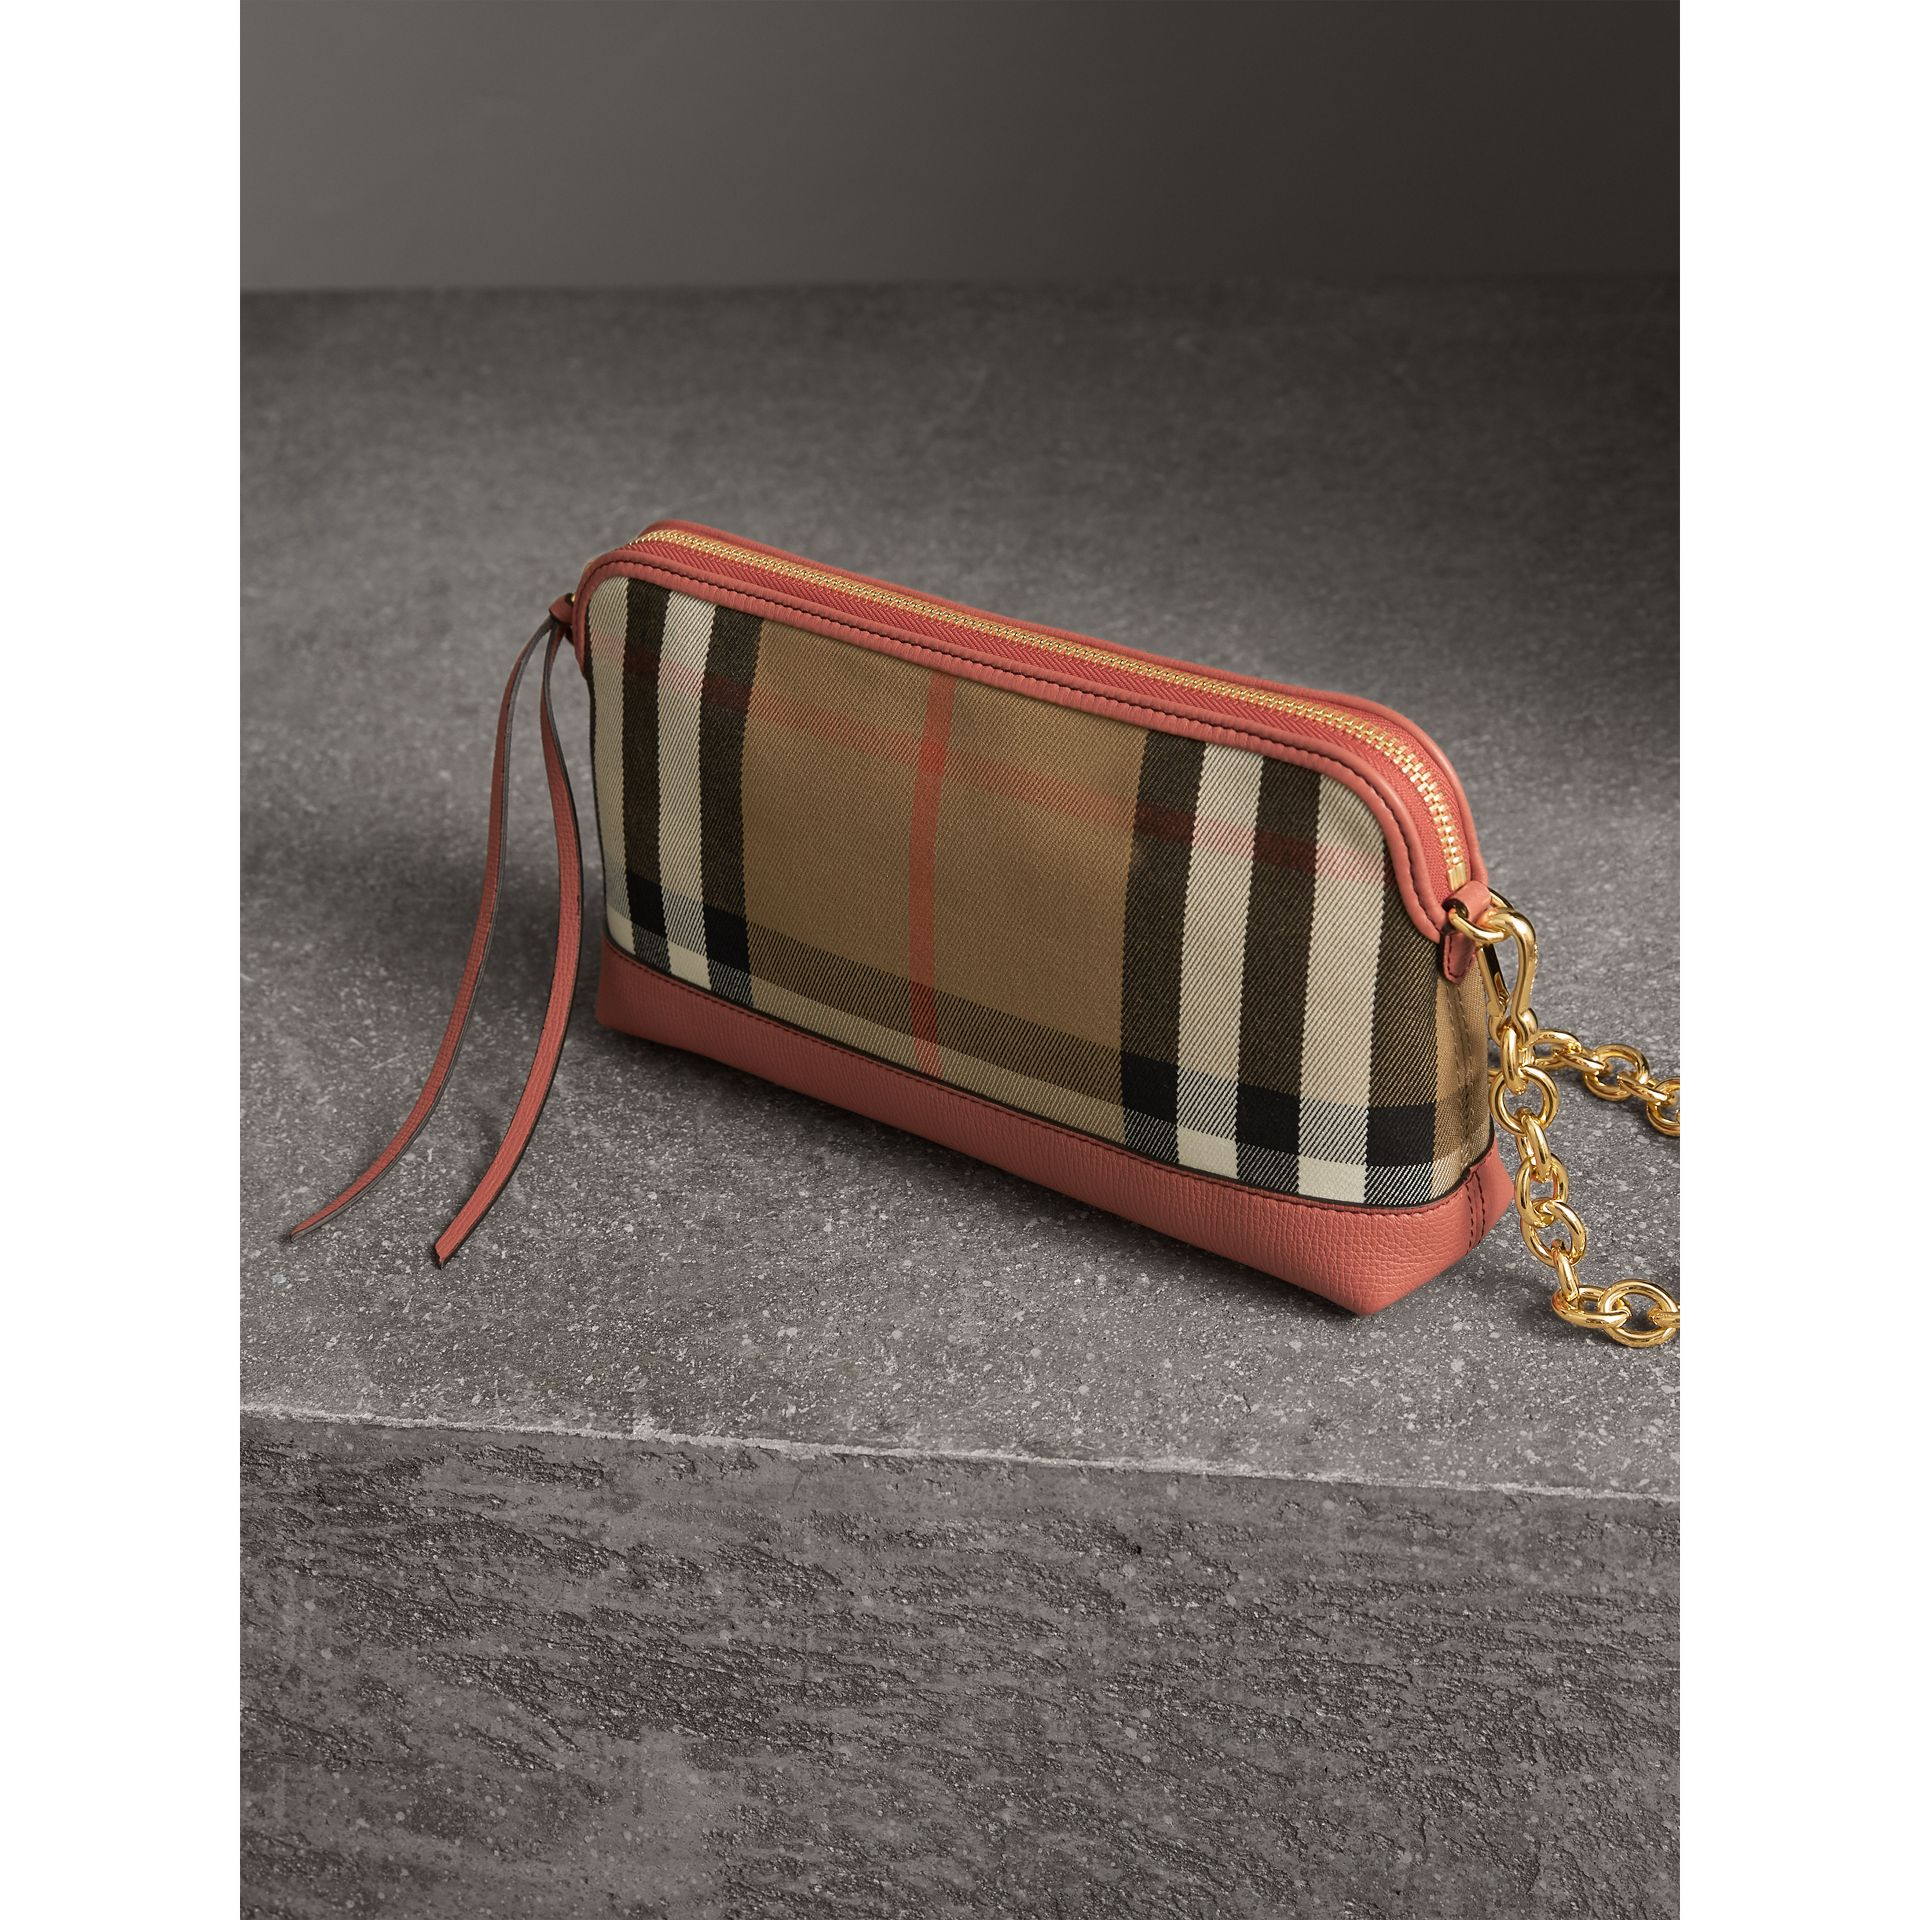 House Check and Leather Clutch Bag in Cinnamon Red - Women | Burberry Singapore - gallery image 7